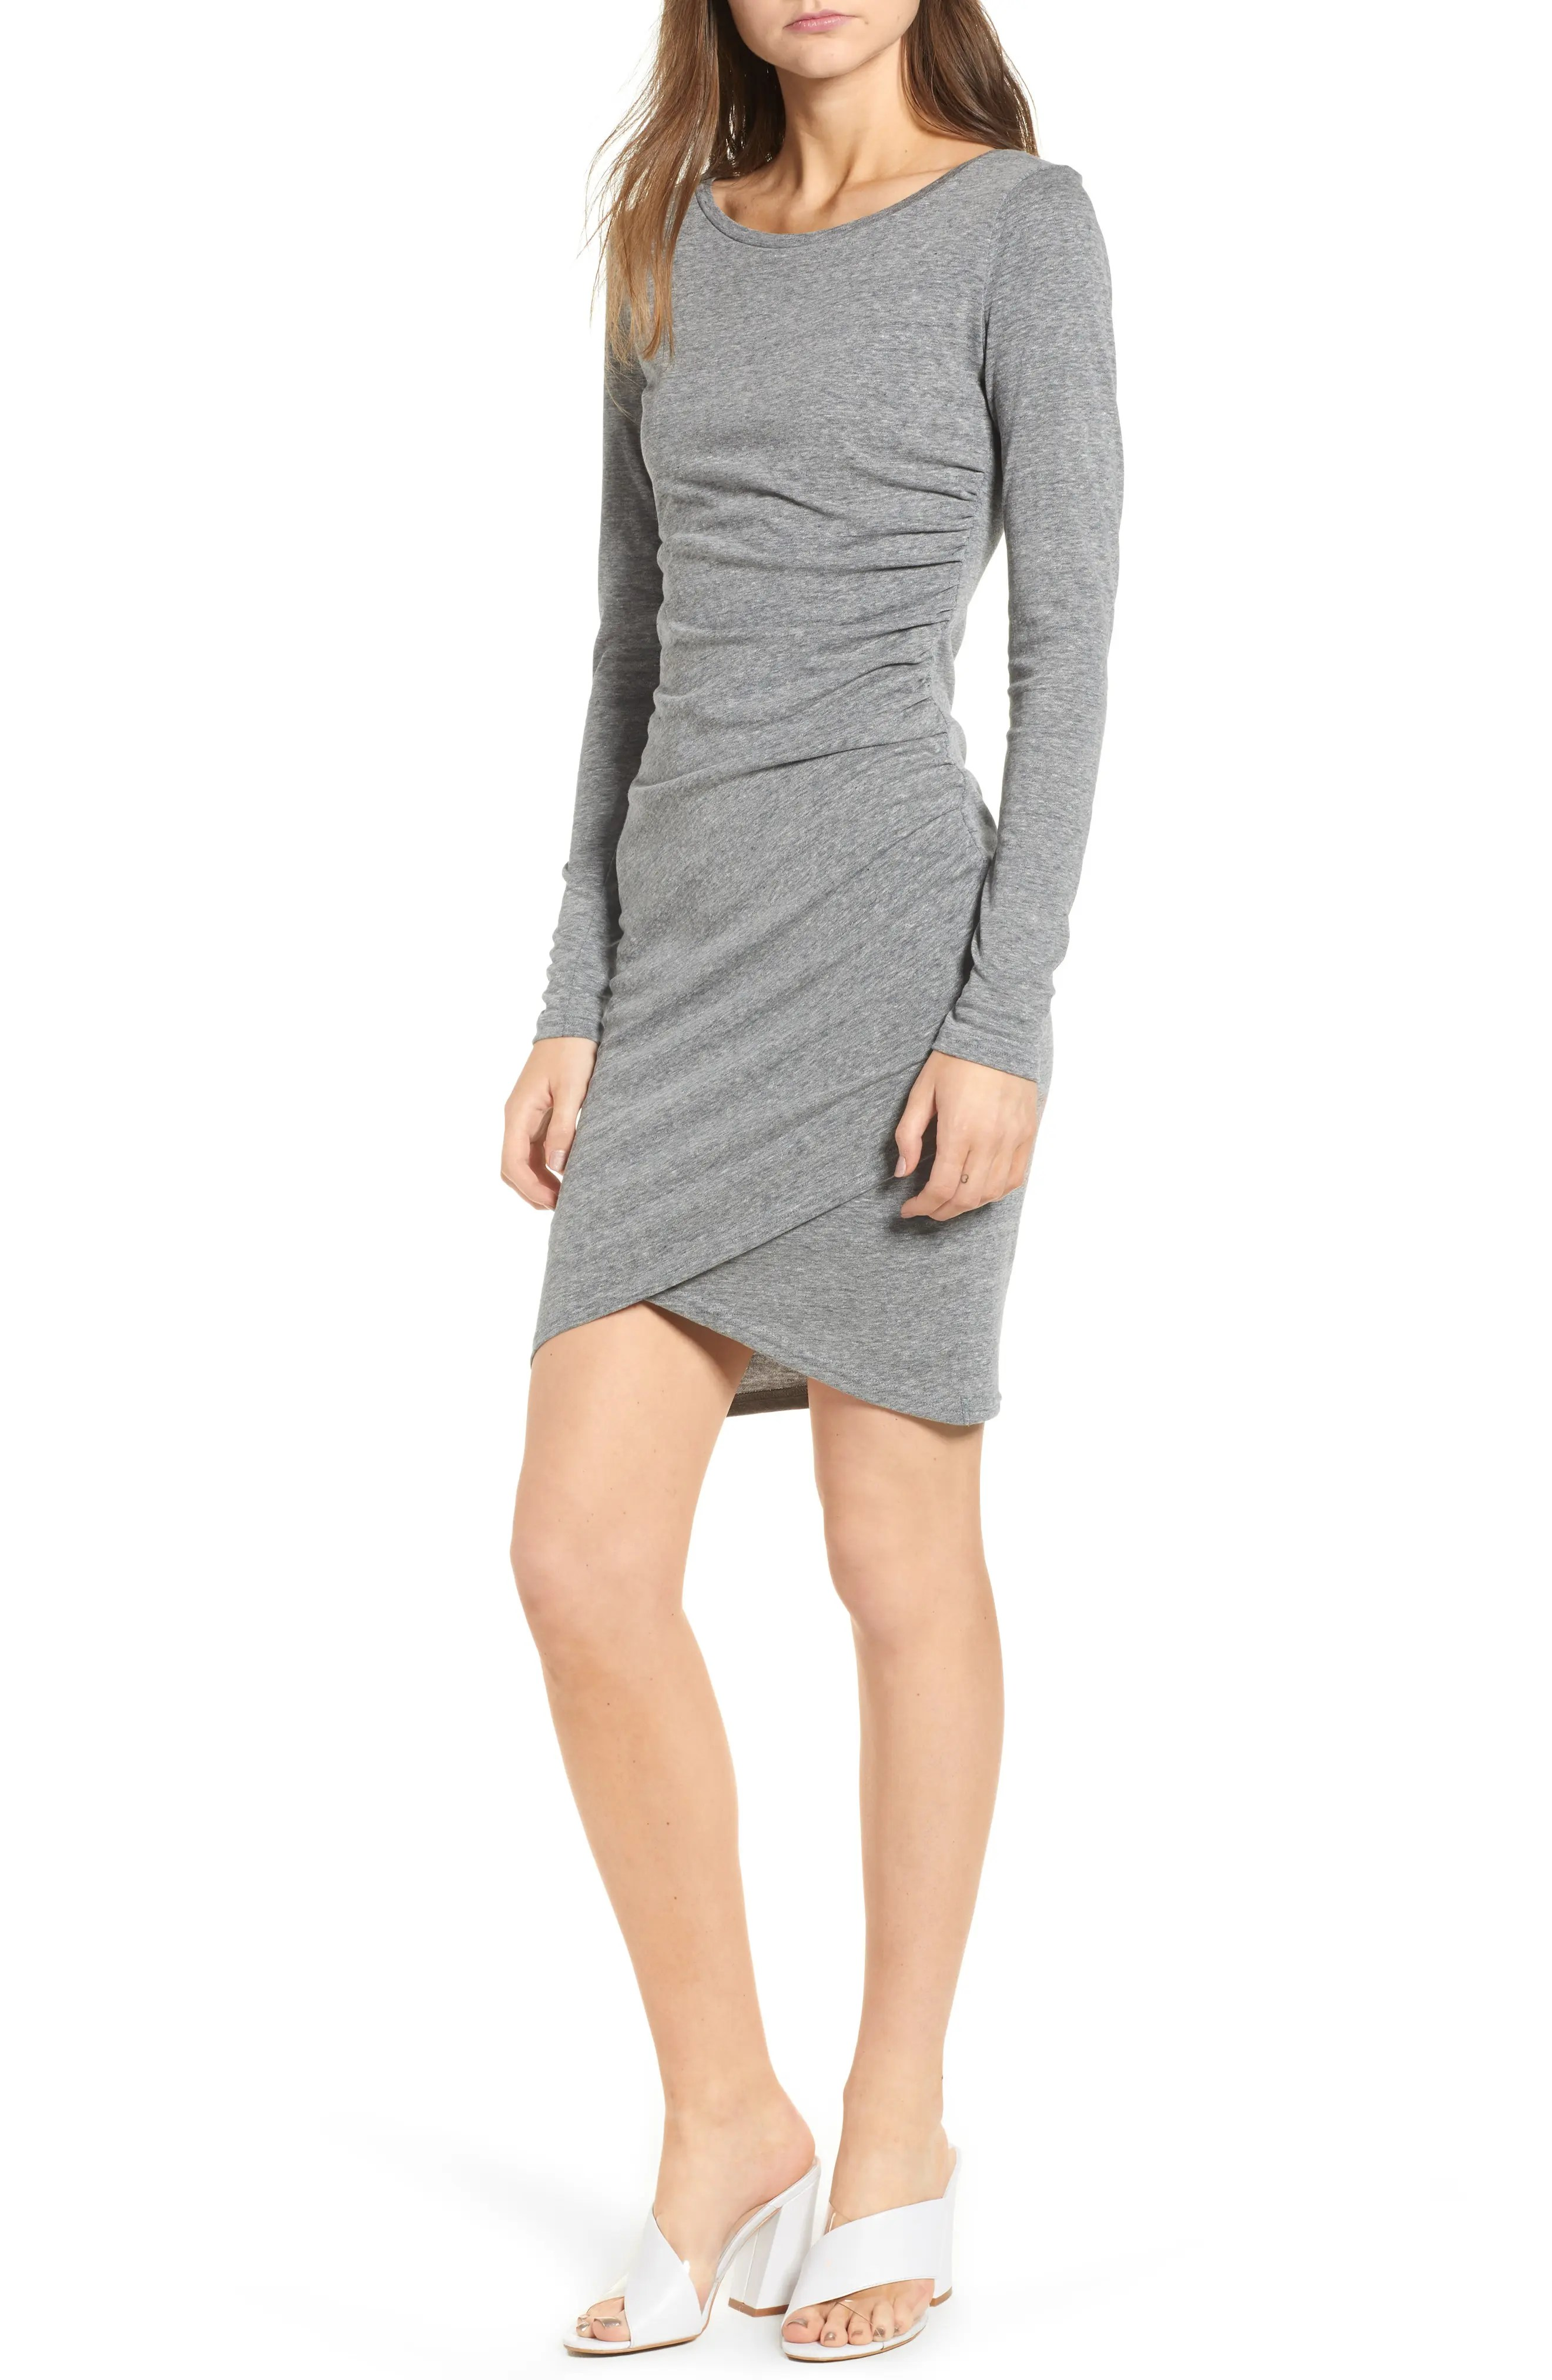 Leith ruched long sleeve dress also plus size dresses nordstrom rh shoprdstrom